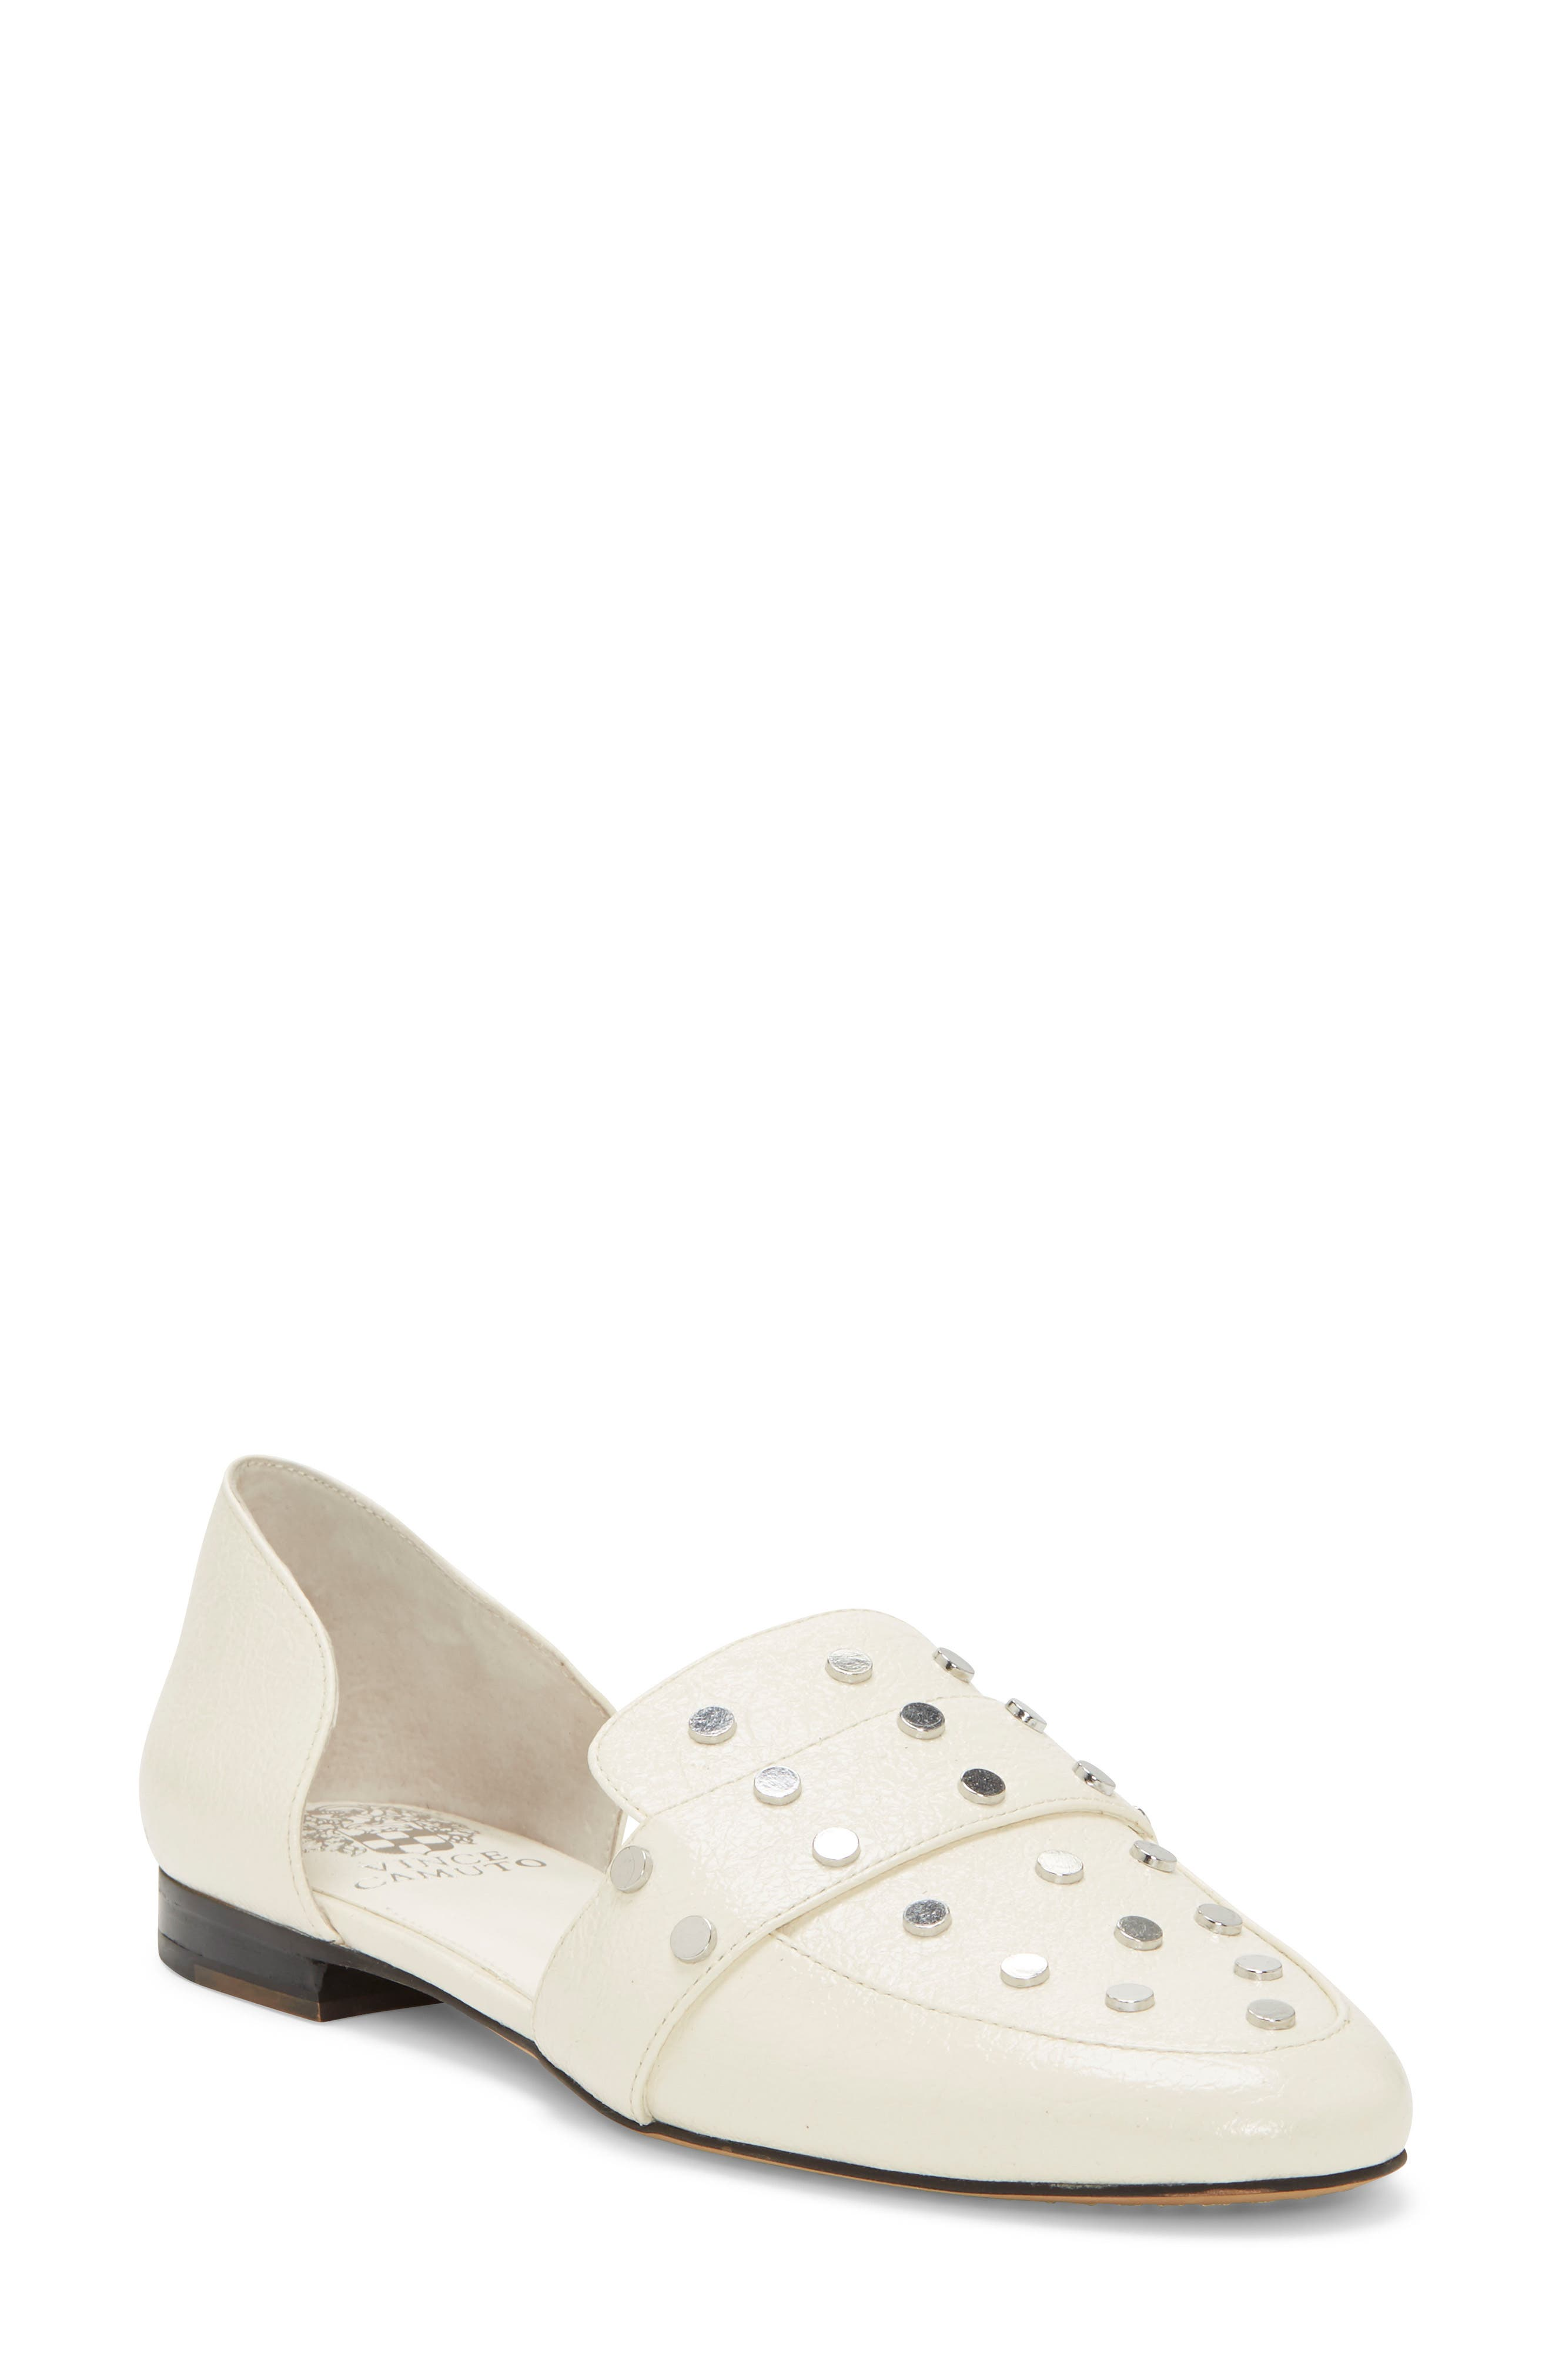 Vince Camuto Wenerly Studded d'Orsay Loafer (Women)